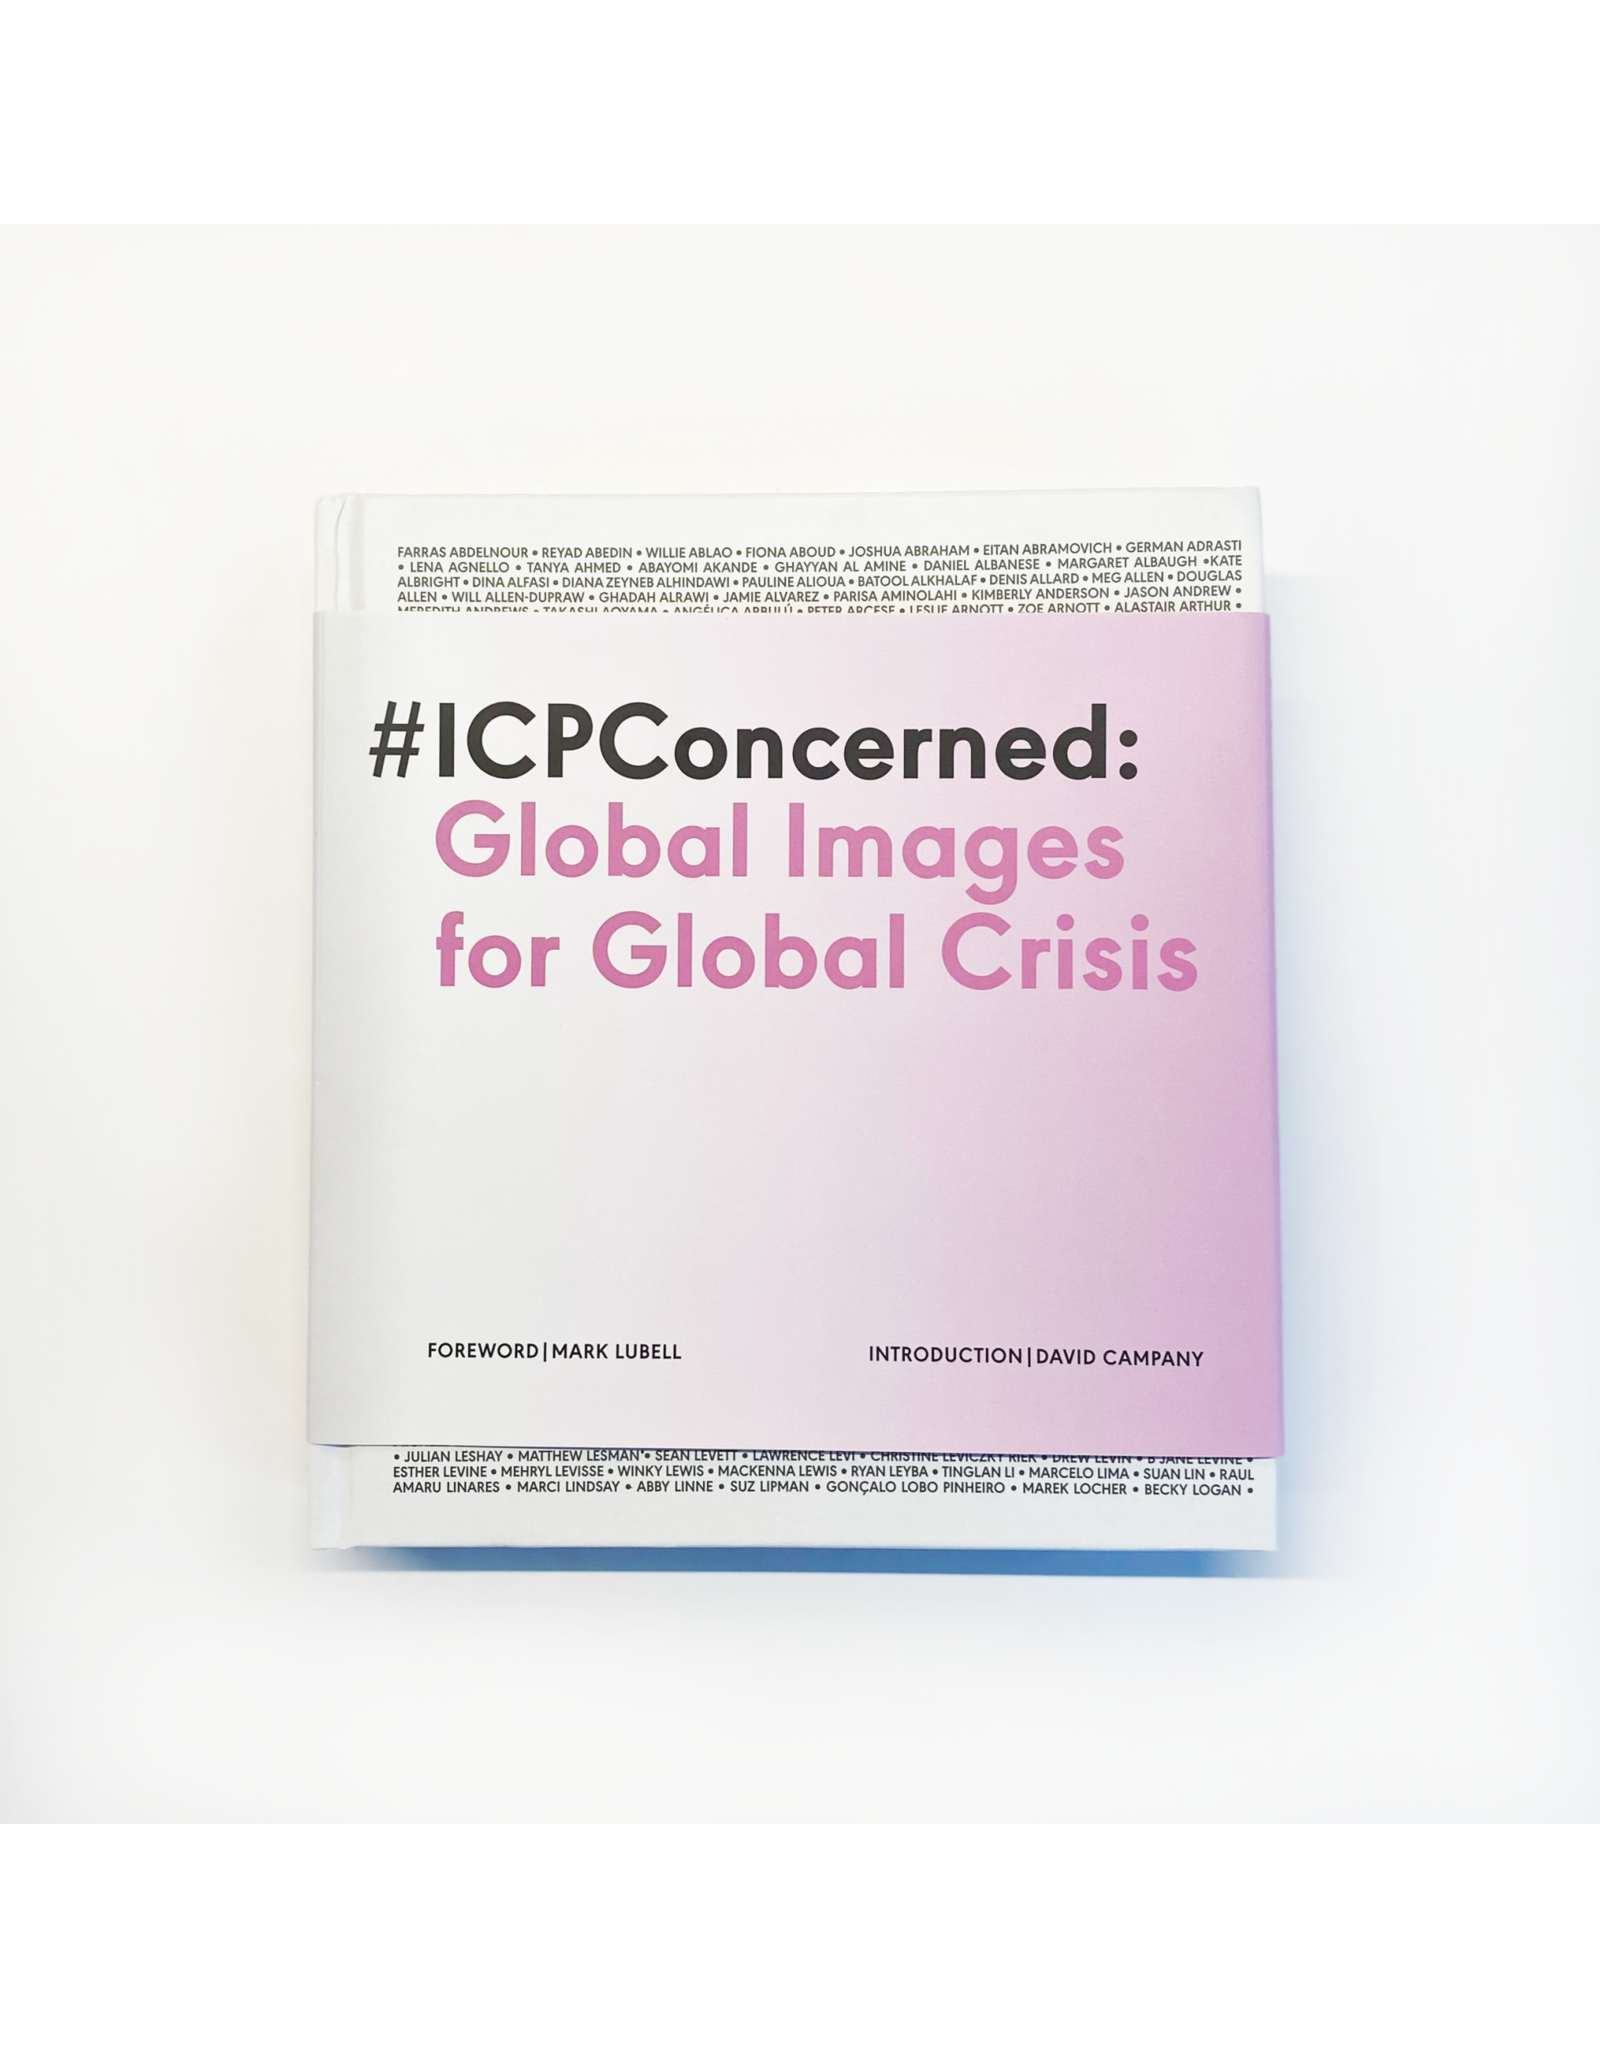 #ICPConcerned: Global Images for Global Crisis